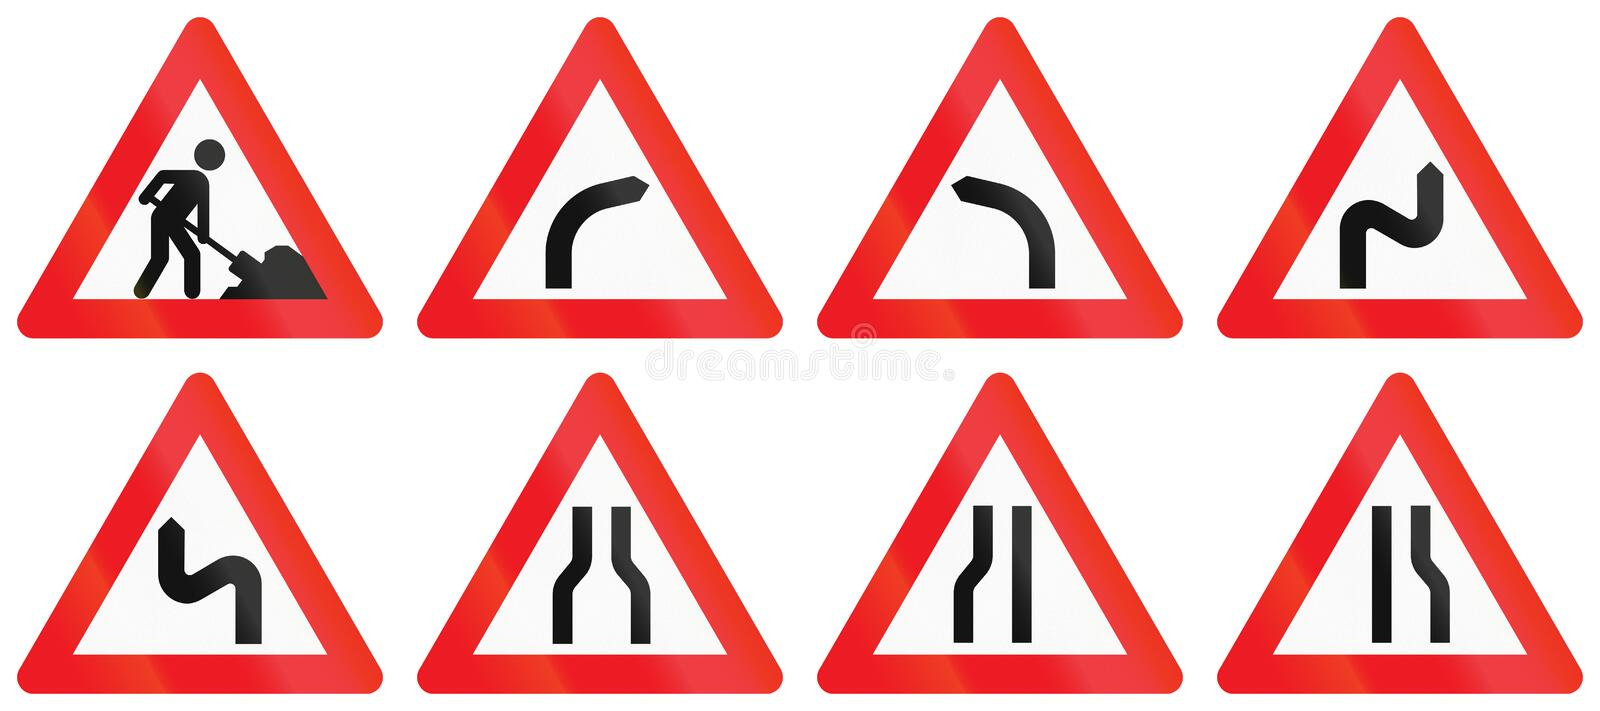 Collection of Road Signs Used in Denmark royalty free illustration